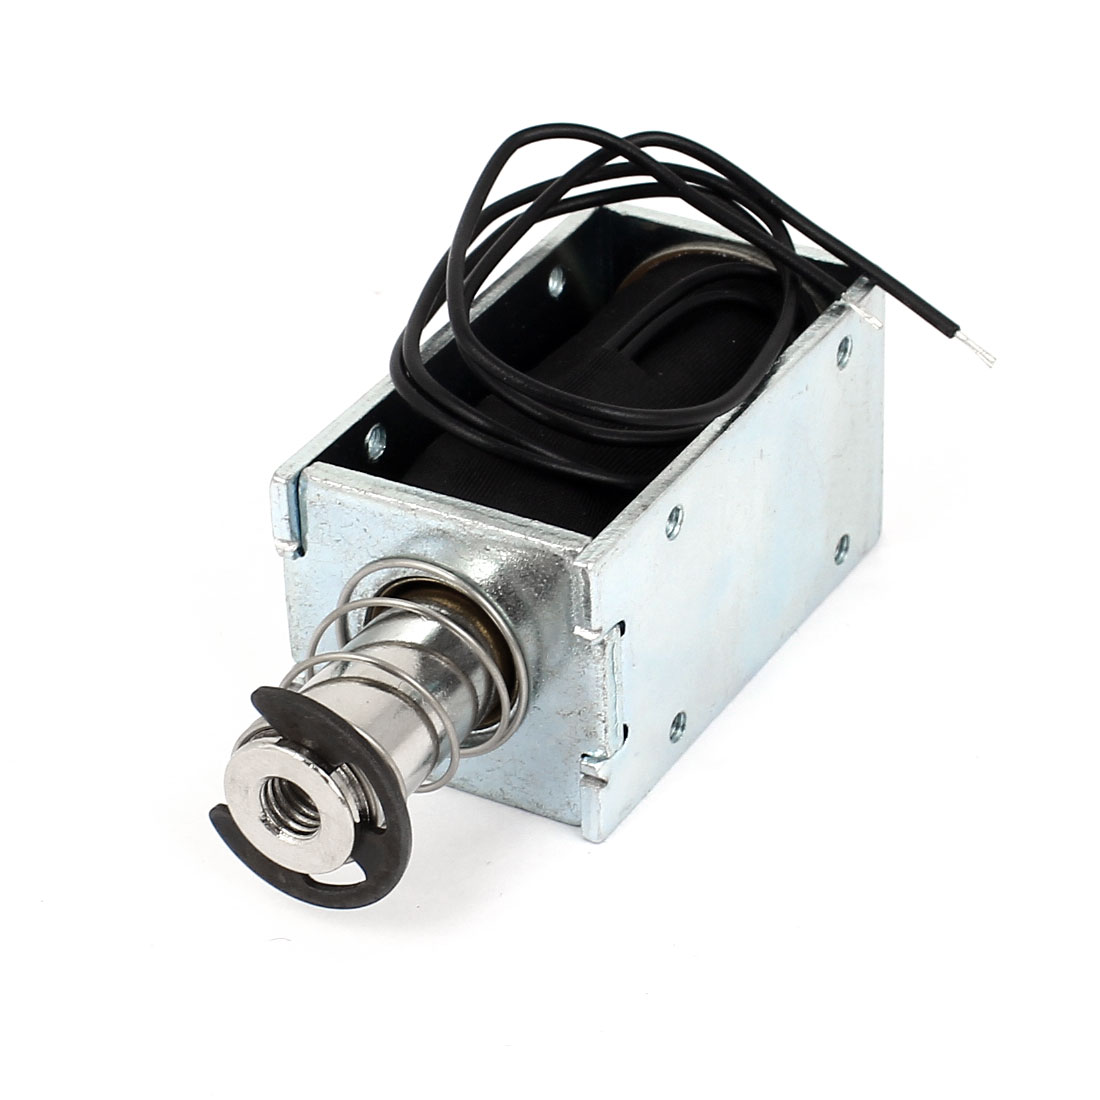 DC 12V 2A 24W 12mm 800g 10% Open Frame Spring Plunger Linear Motion Push Pull Type Solenoid Electromagnet Actuator